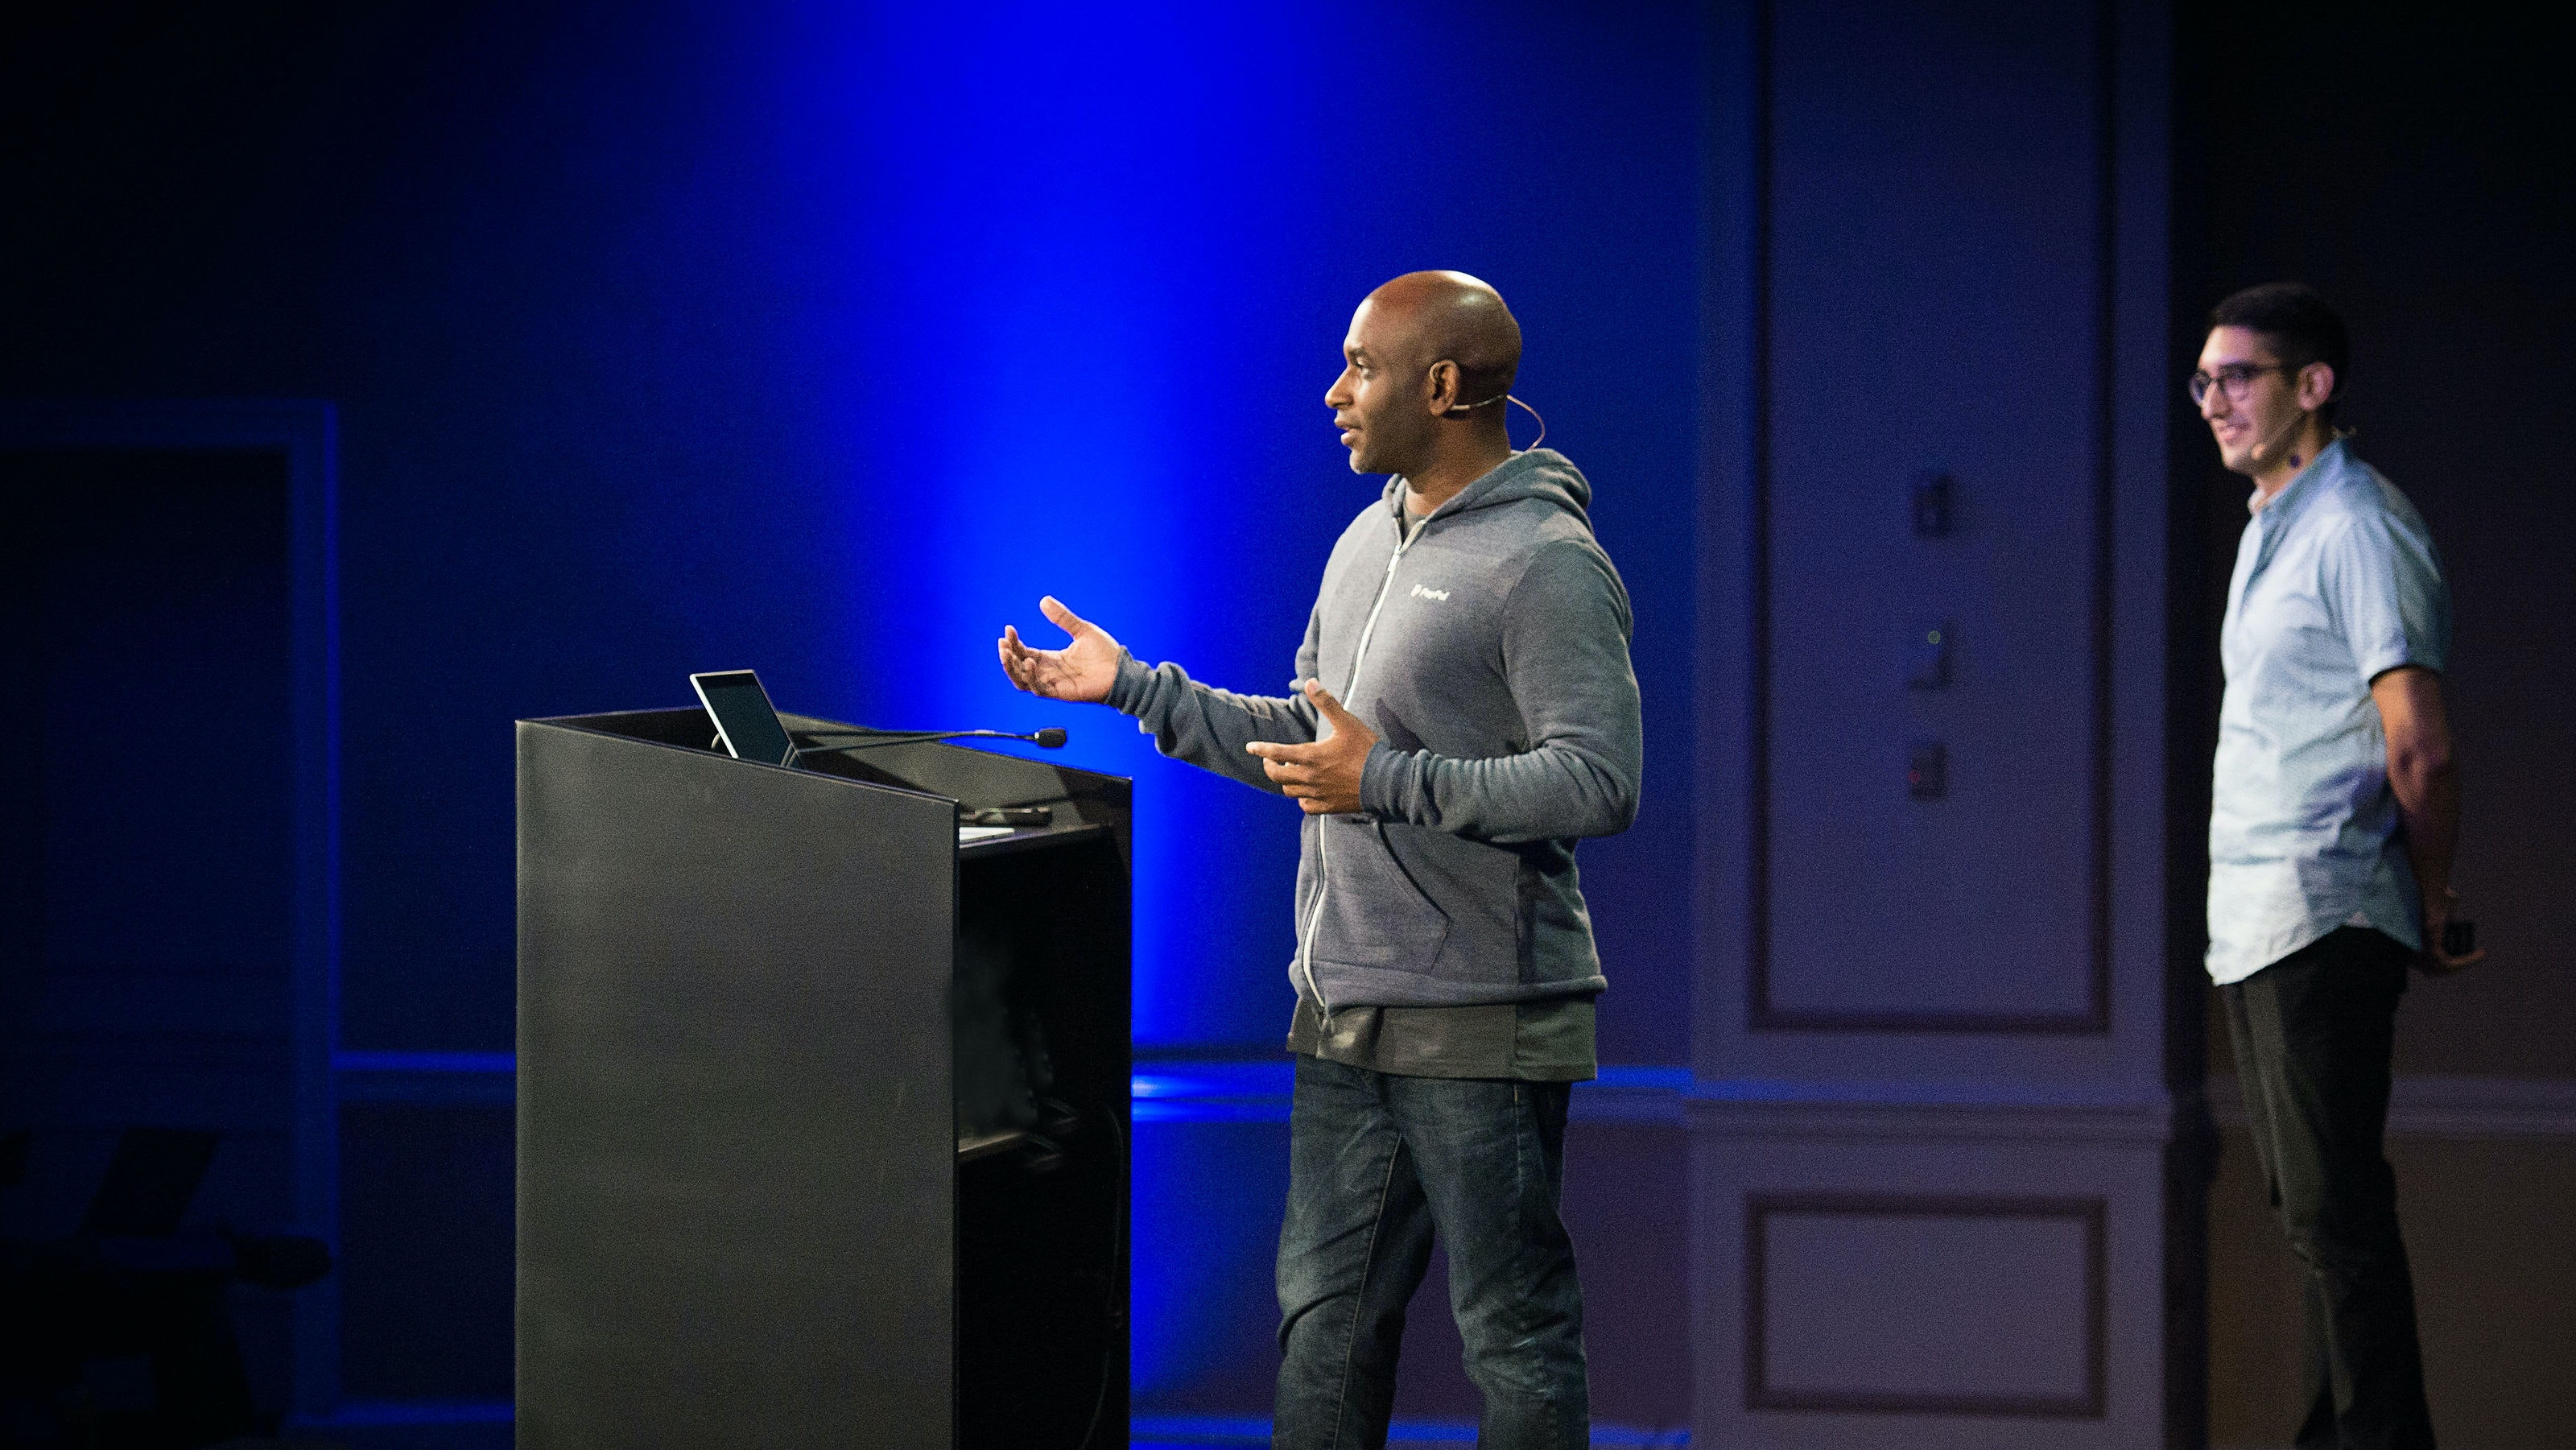 Kelsey Hightower Q&A on the Cloud, DevOps, Service Mesh, and HashiCorp Products Image